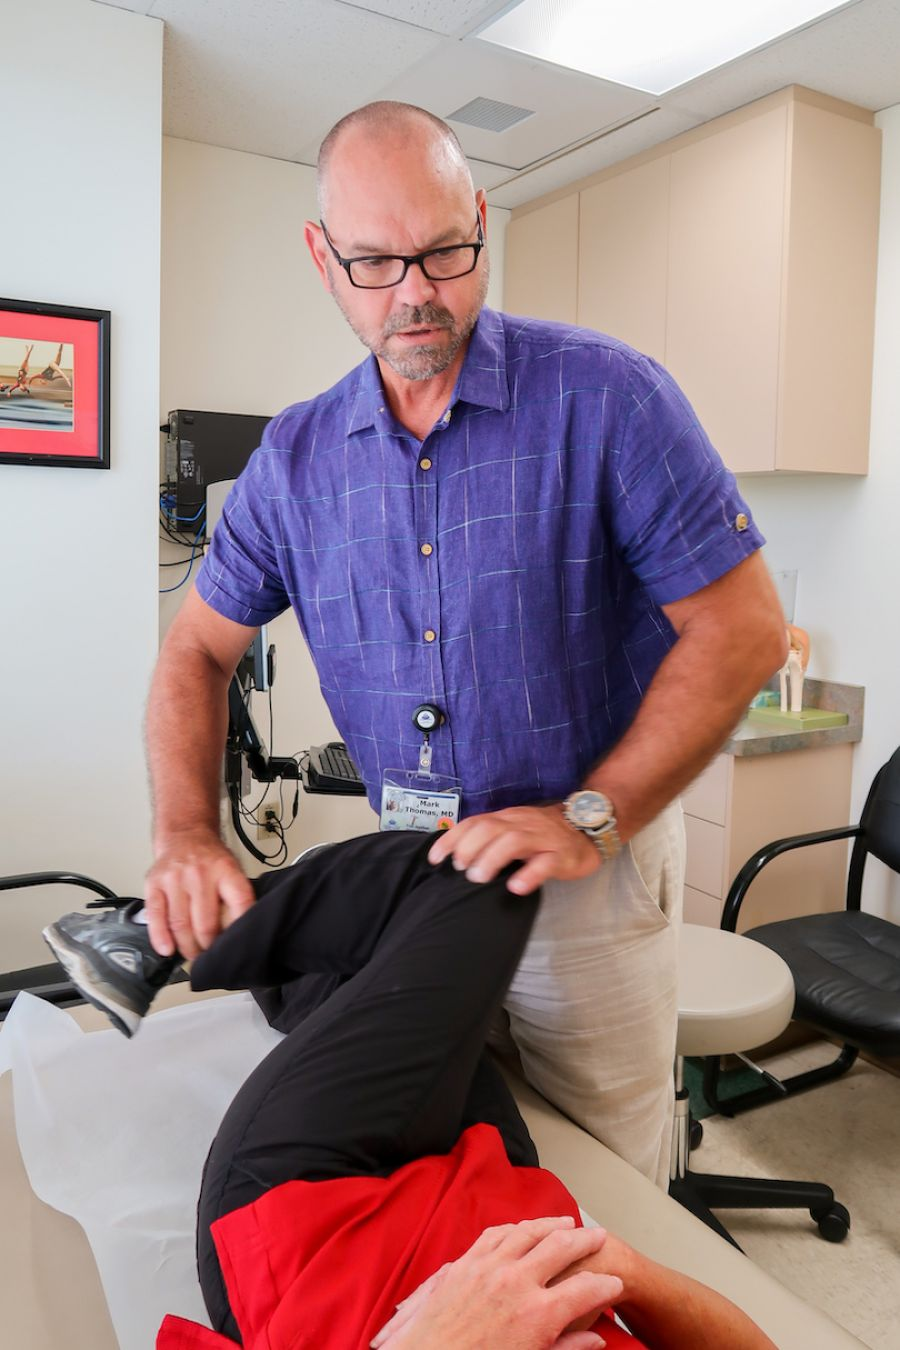 Dr. Mark Thomas examining a patient's hip mobility